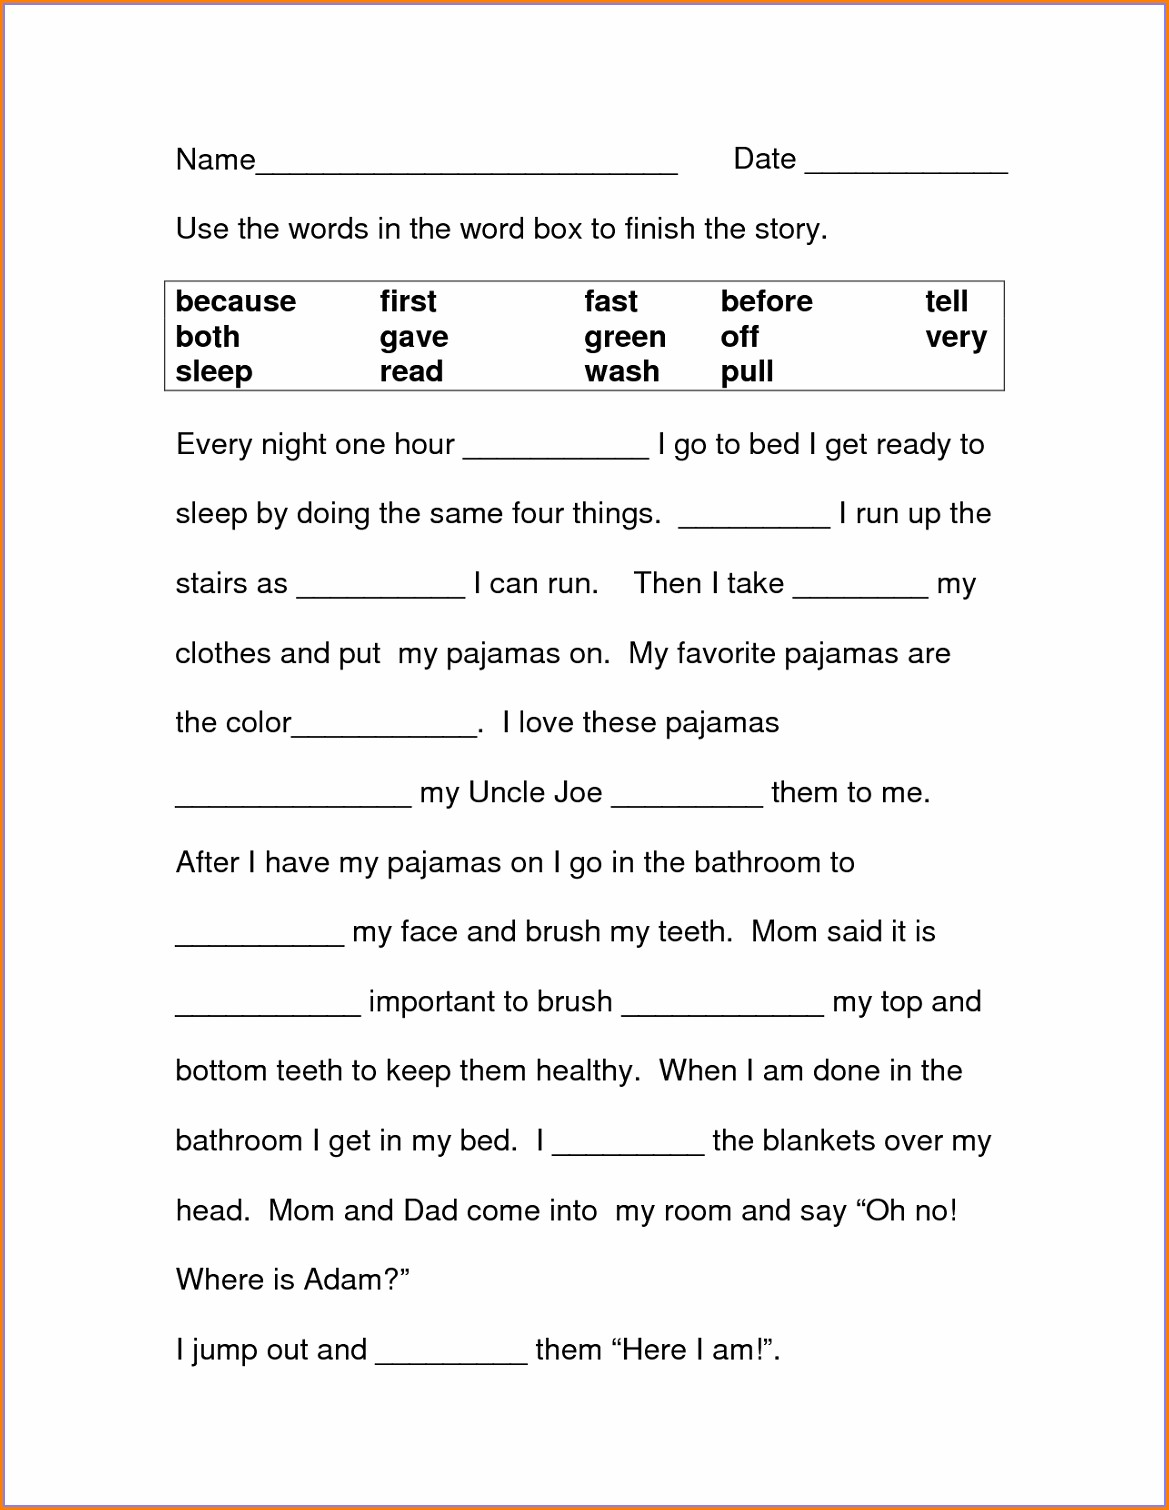 Pronoun Worksheet For Grade 2 With Answers Worksheet